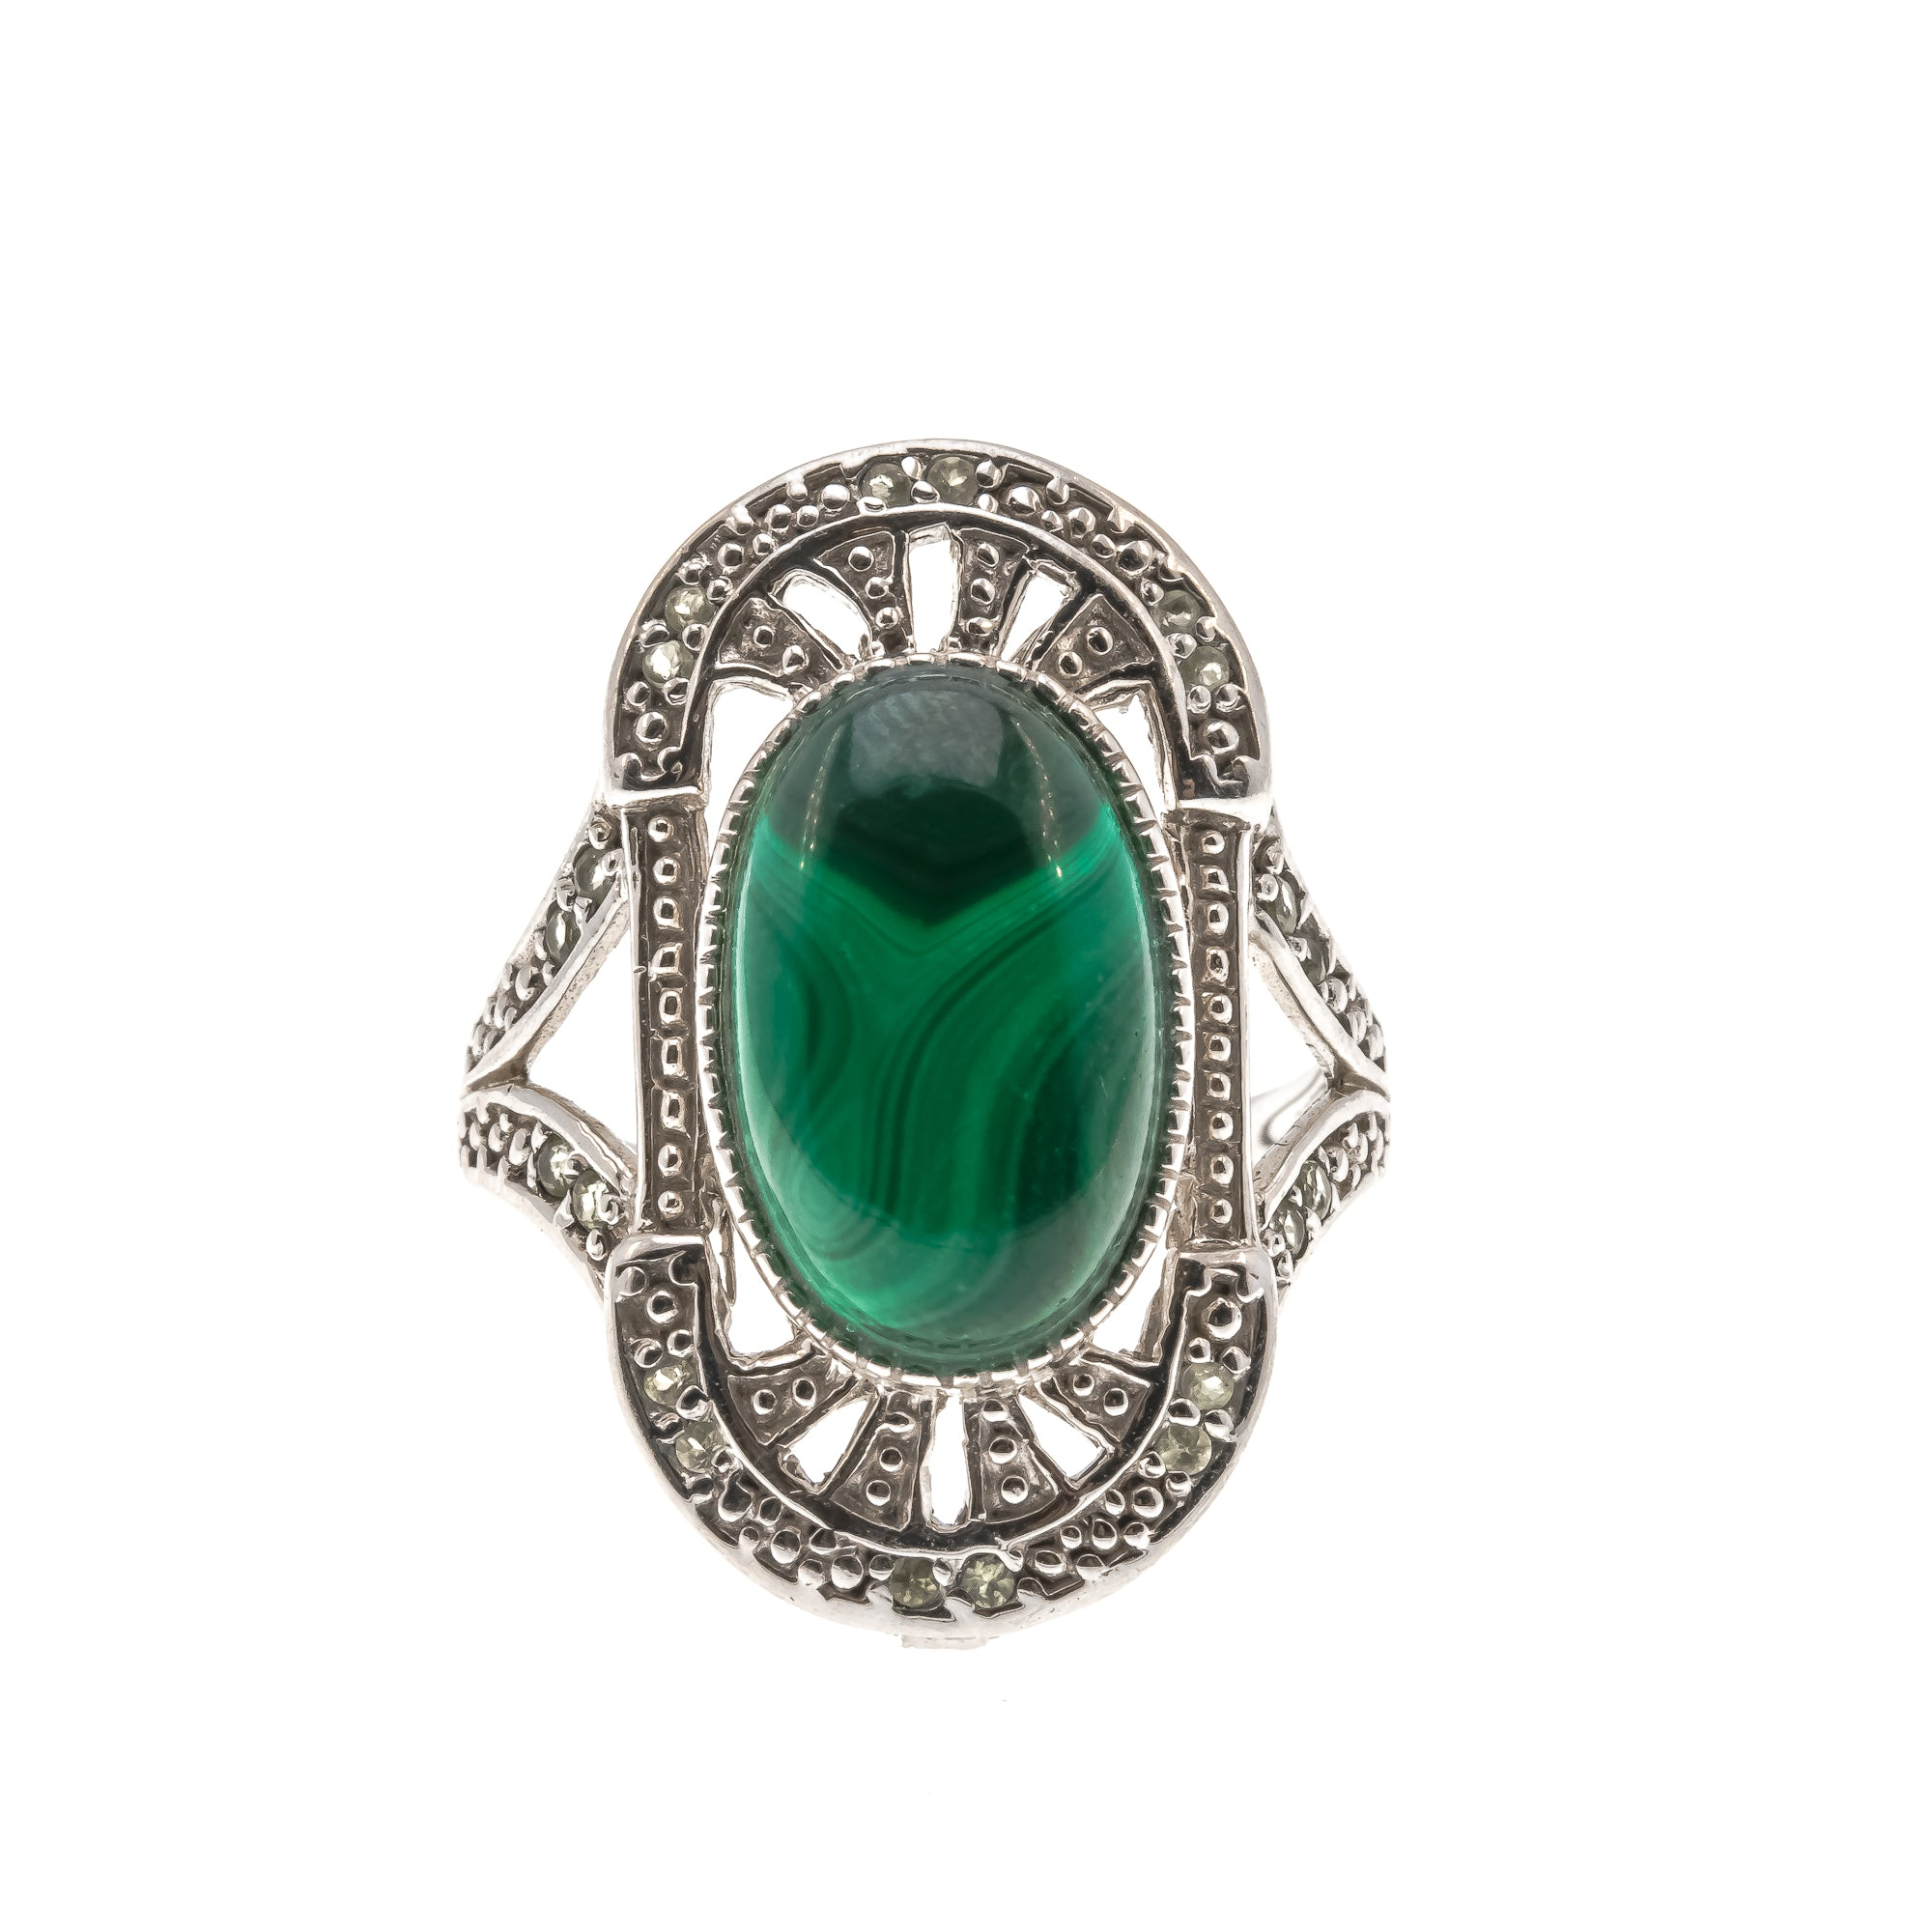 Shades Of Green - Vintage Sterling Silver Malachite & Prasiolite Ring